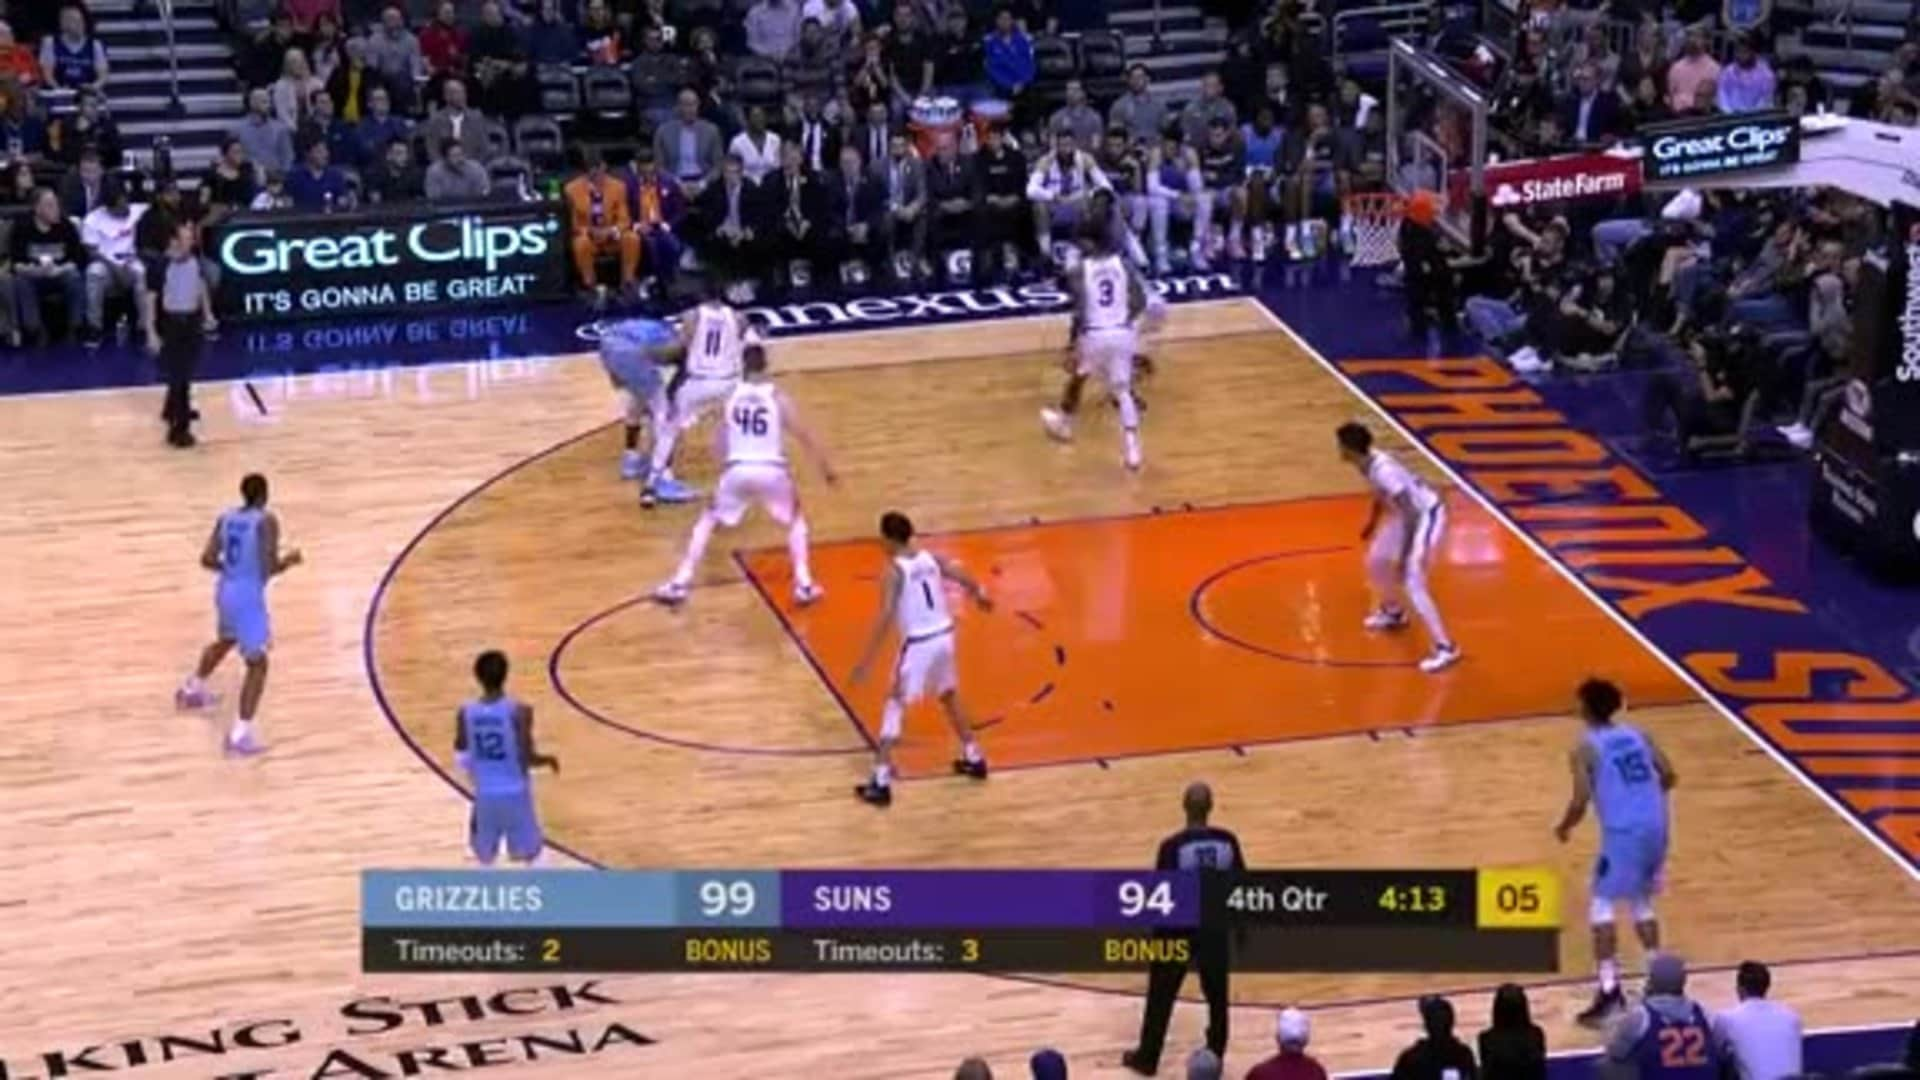 Jaren Jackson Jr. puts Ricky Rubio in a spin cycle